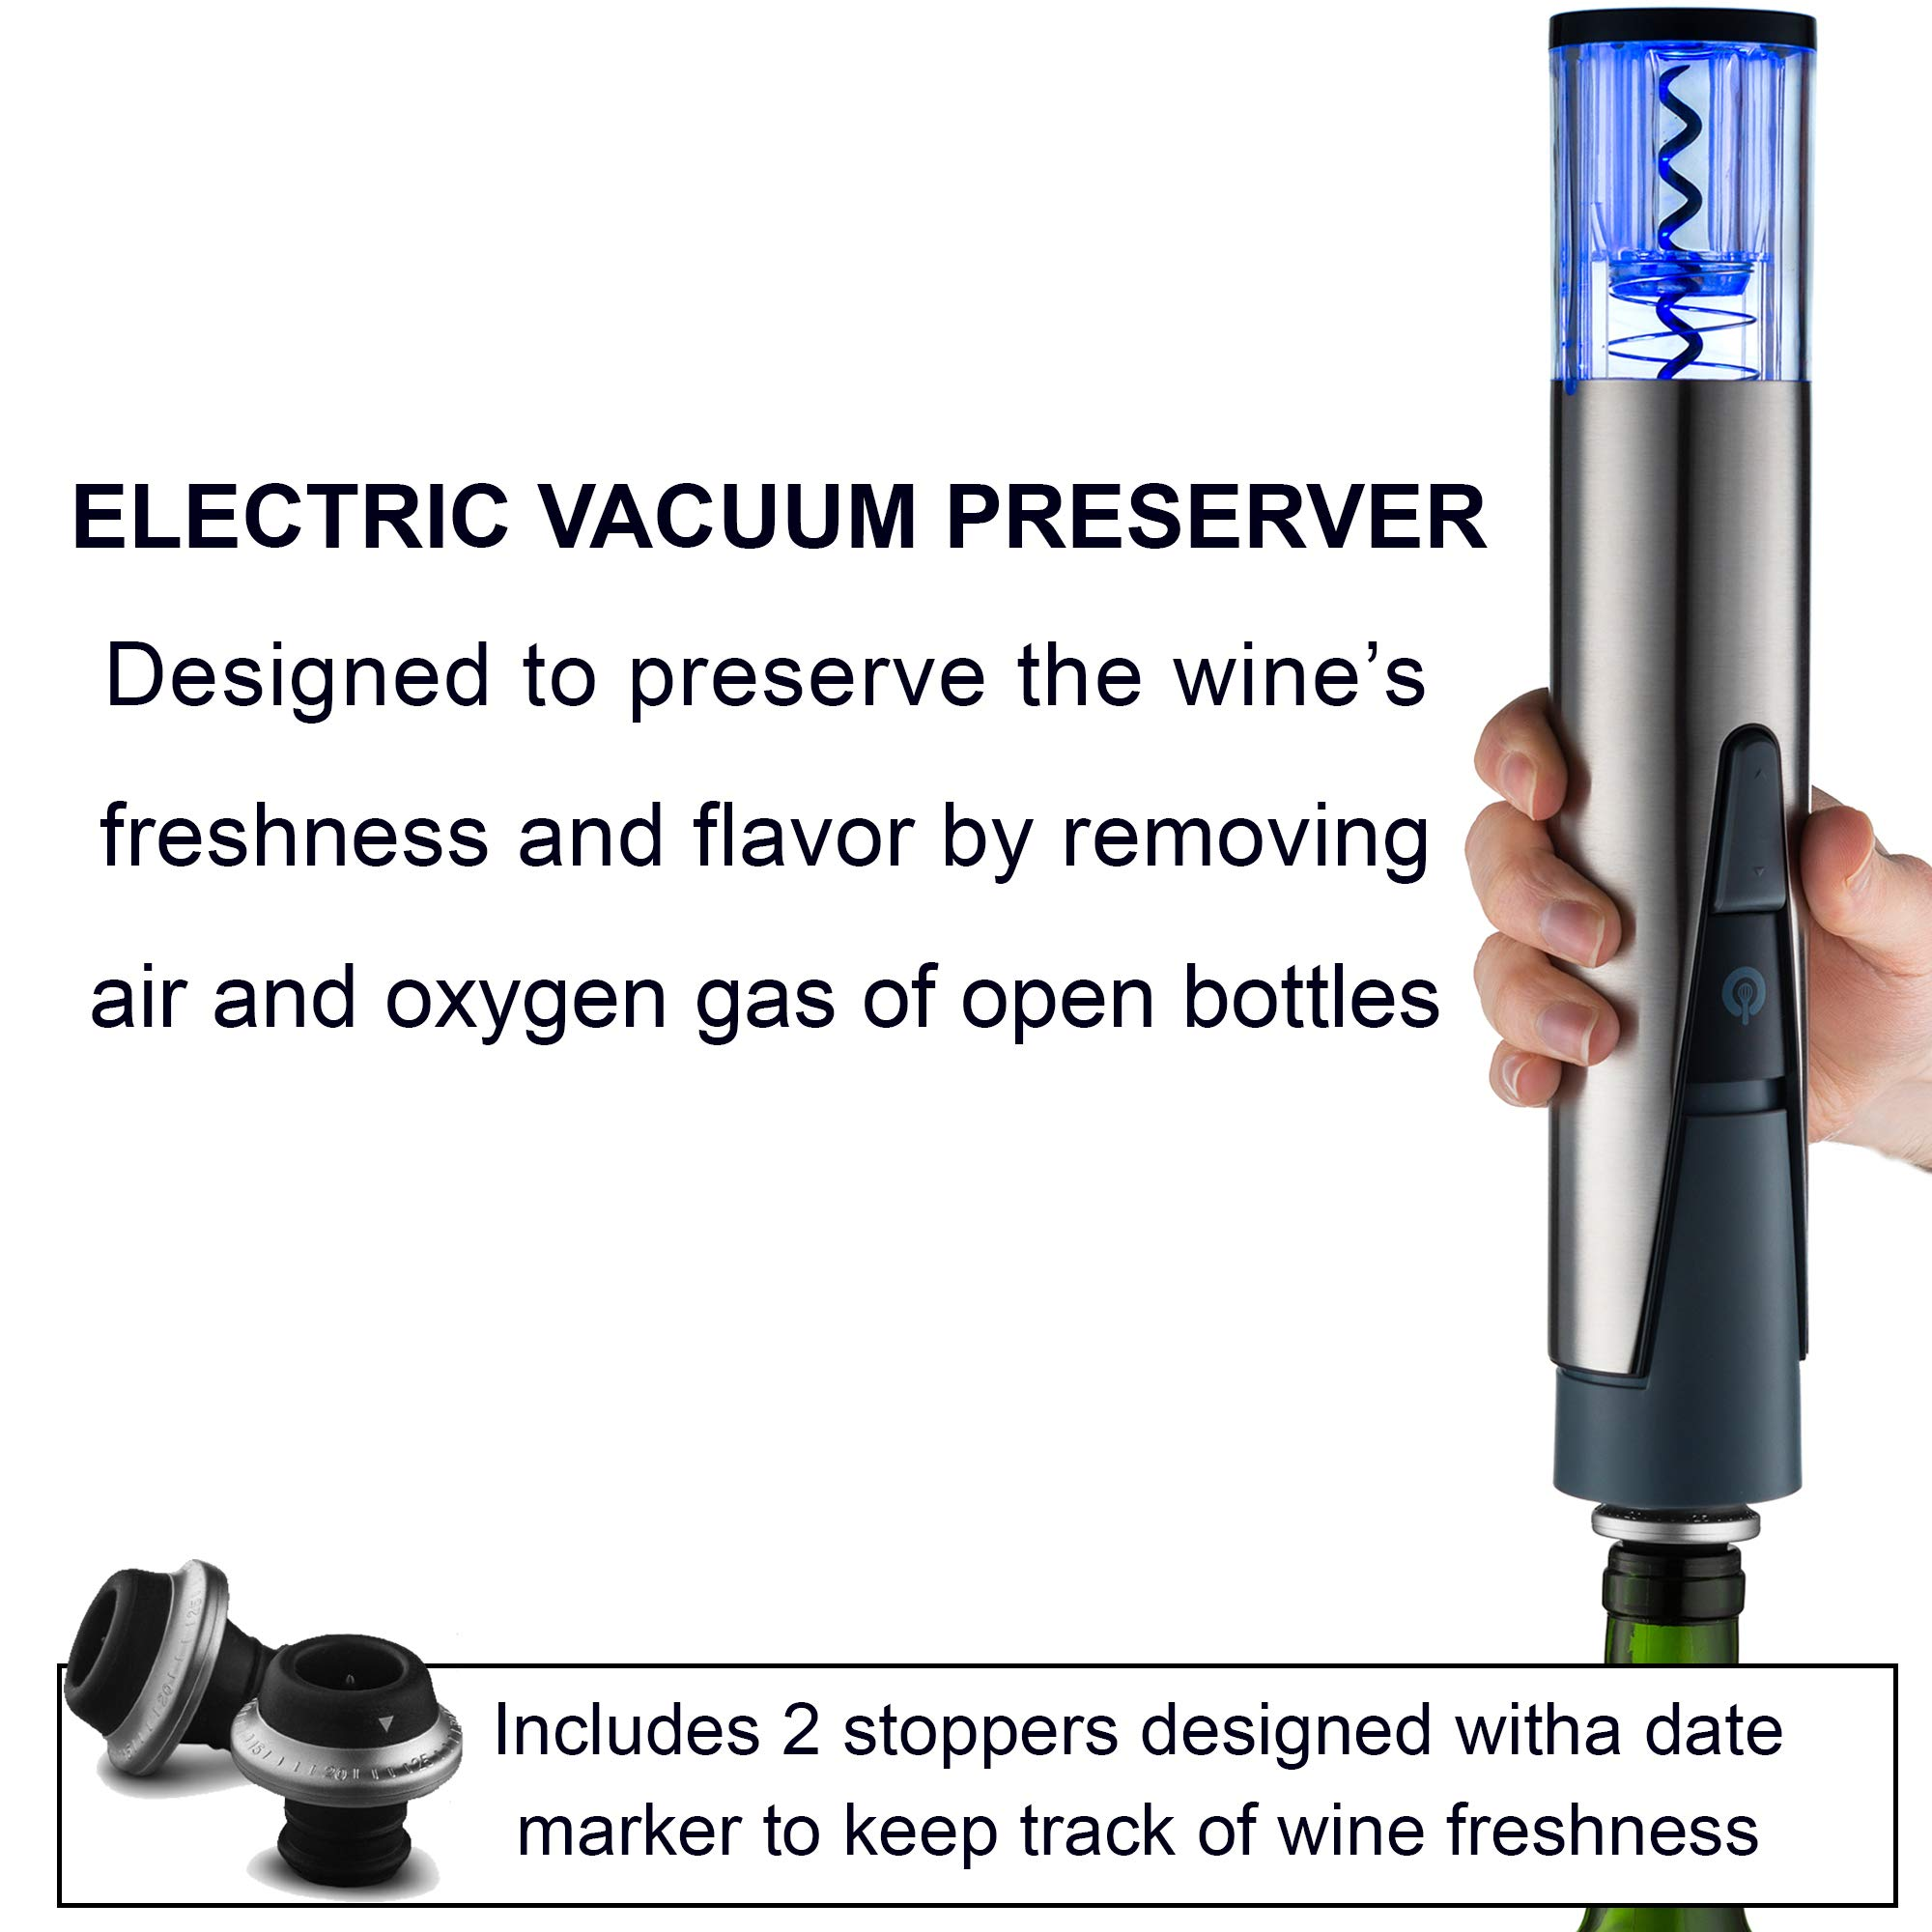 Gourmia 2 in 1 Wine Opener and Preserver set Electric Corkscrew Rechargeable Wine Bottle Opener and Sealer Removes Corks,Vacuum Seals and Preserves Wine Includes Foil Cutter,2 Stoppers,Recharging Base by Gourmia (Image #5)